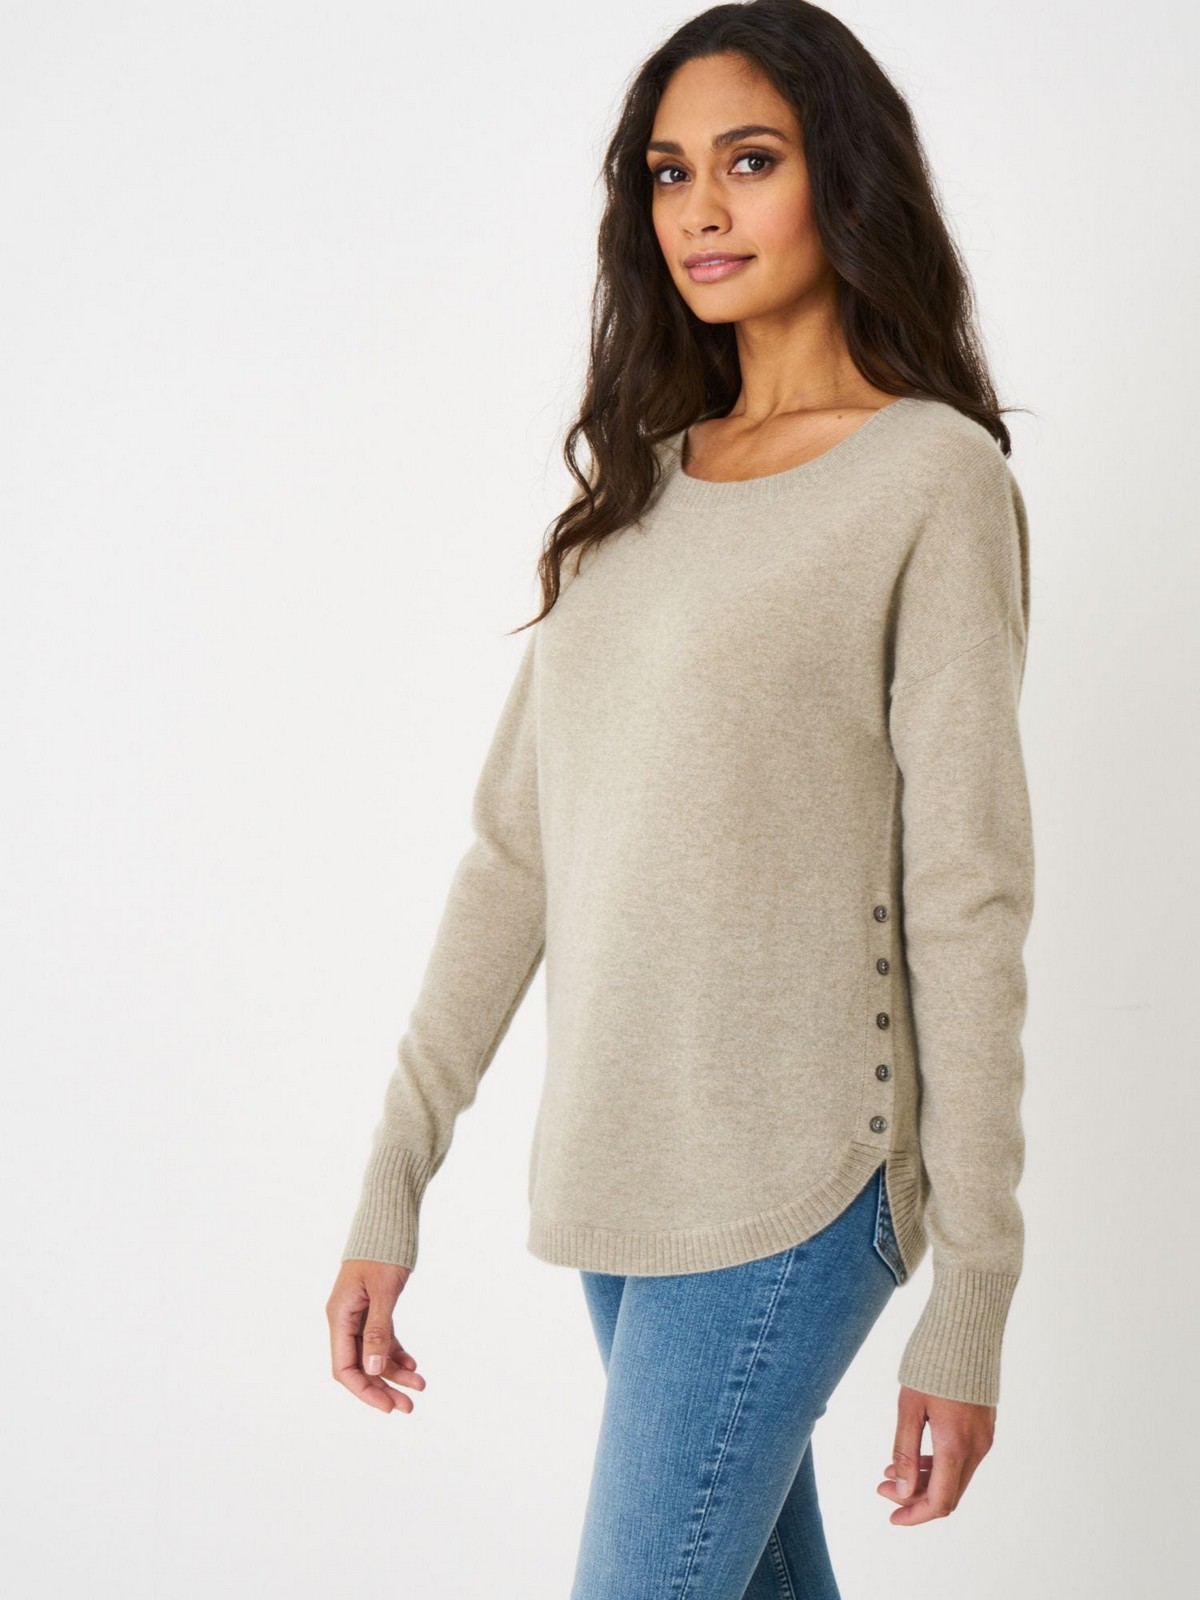 Sweater knoopjes zijkant - 100566 - Repeat